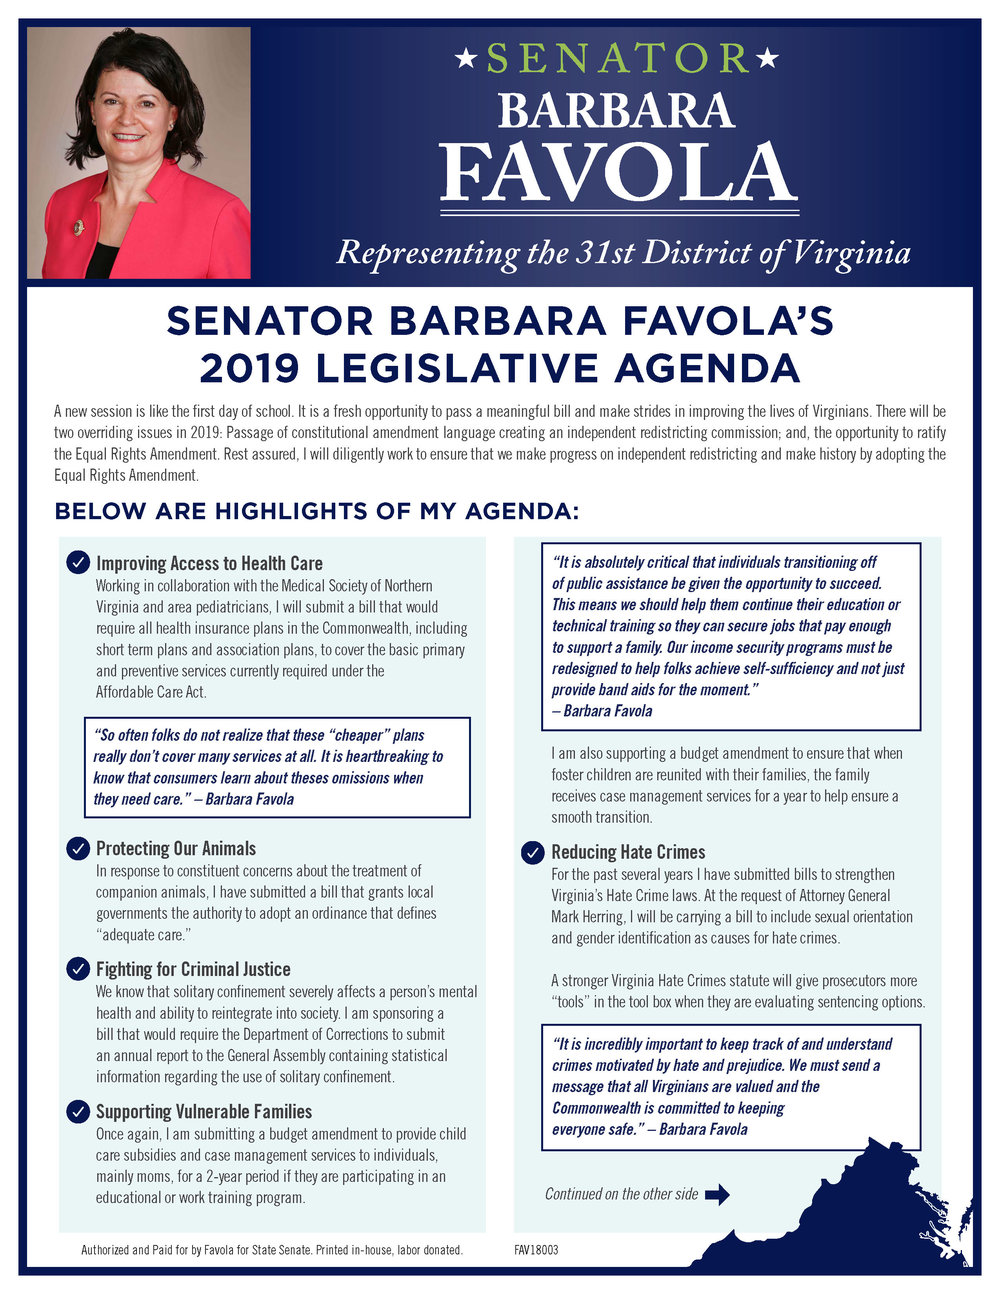 Senator Barbara Favola 2019 Legislative Agenda